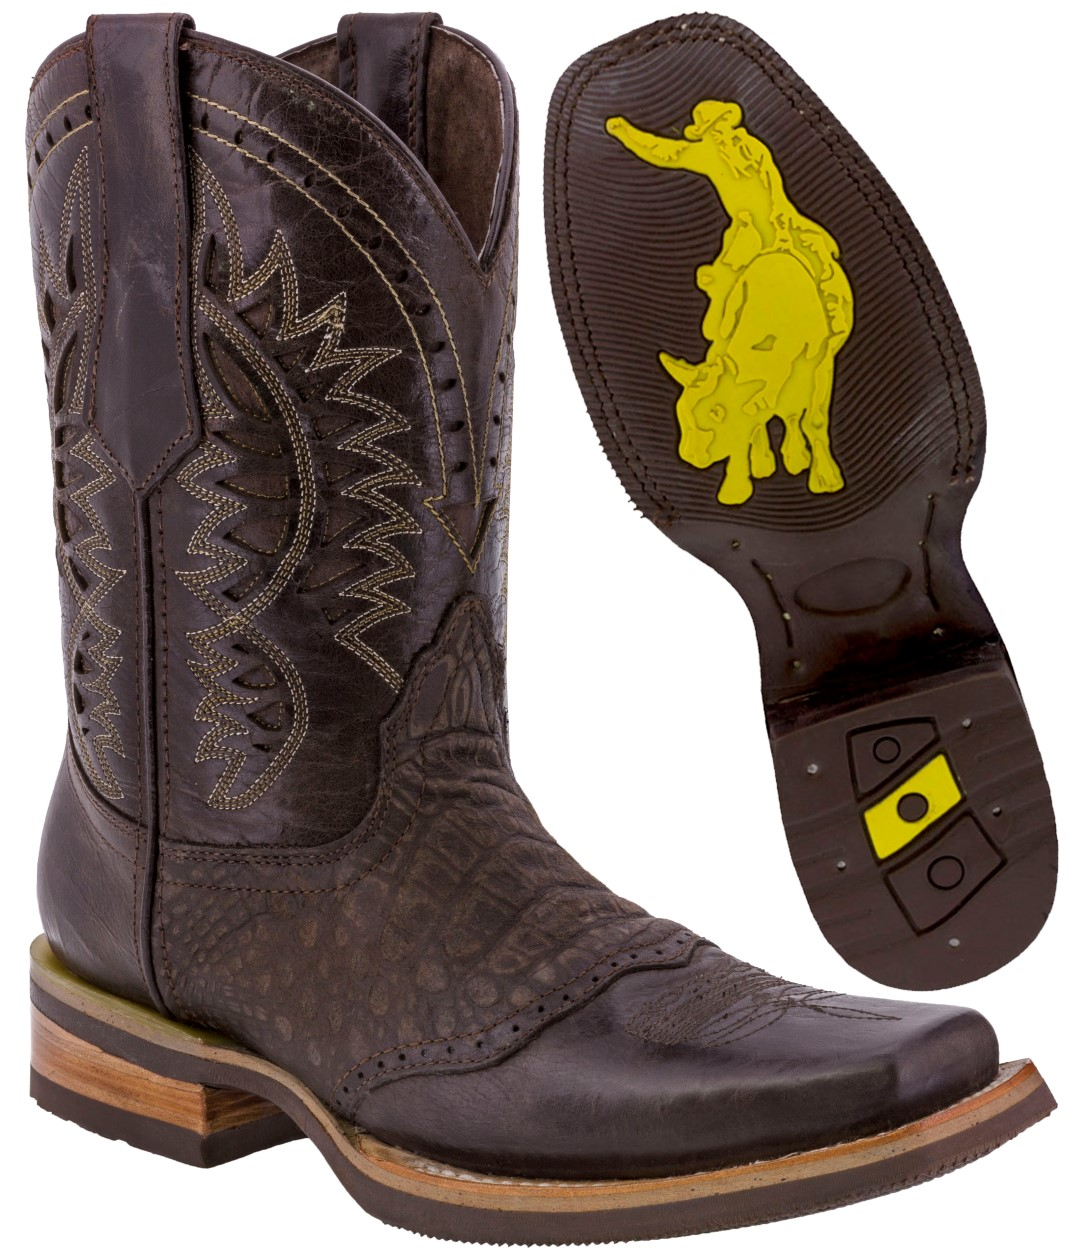 d3a8eaa0e7f Details about Men's Brown Work Western Cowboy Boots Crocodile Print Leather  Pull On Square Toe